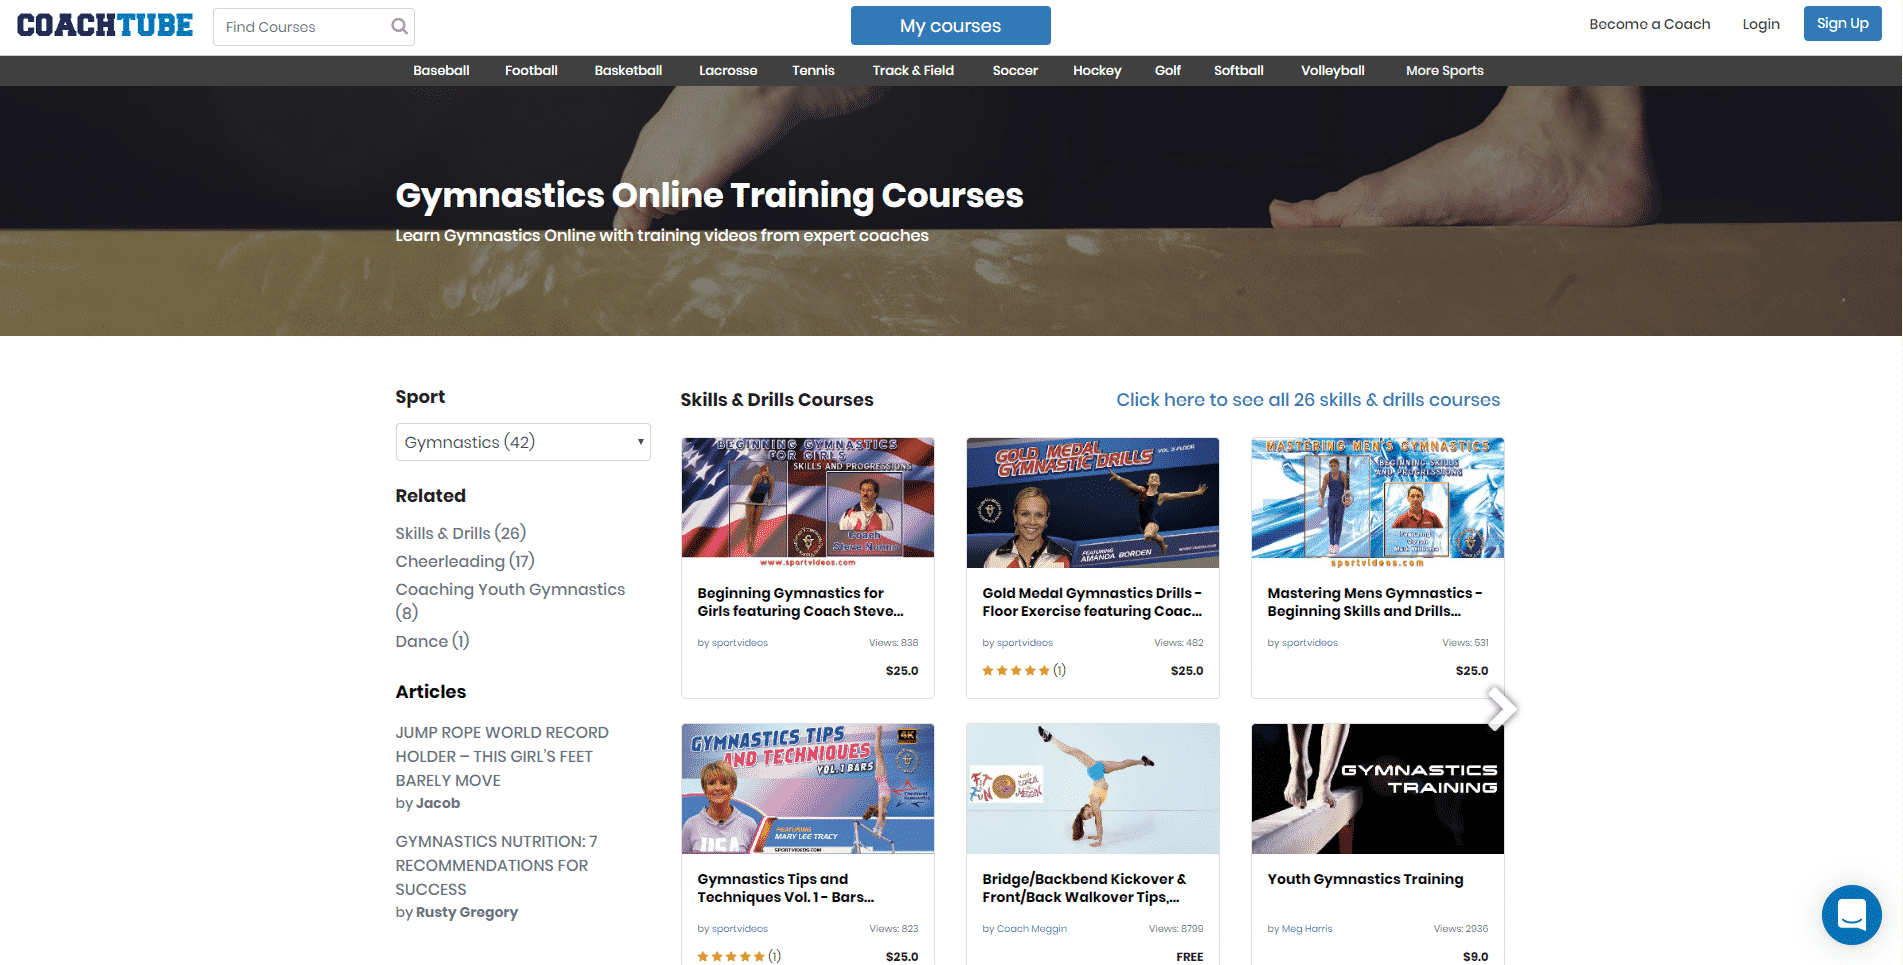 Coachtube Learn Gymnastics Lessons Online